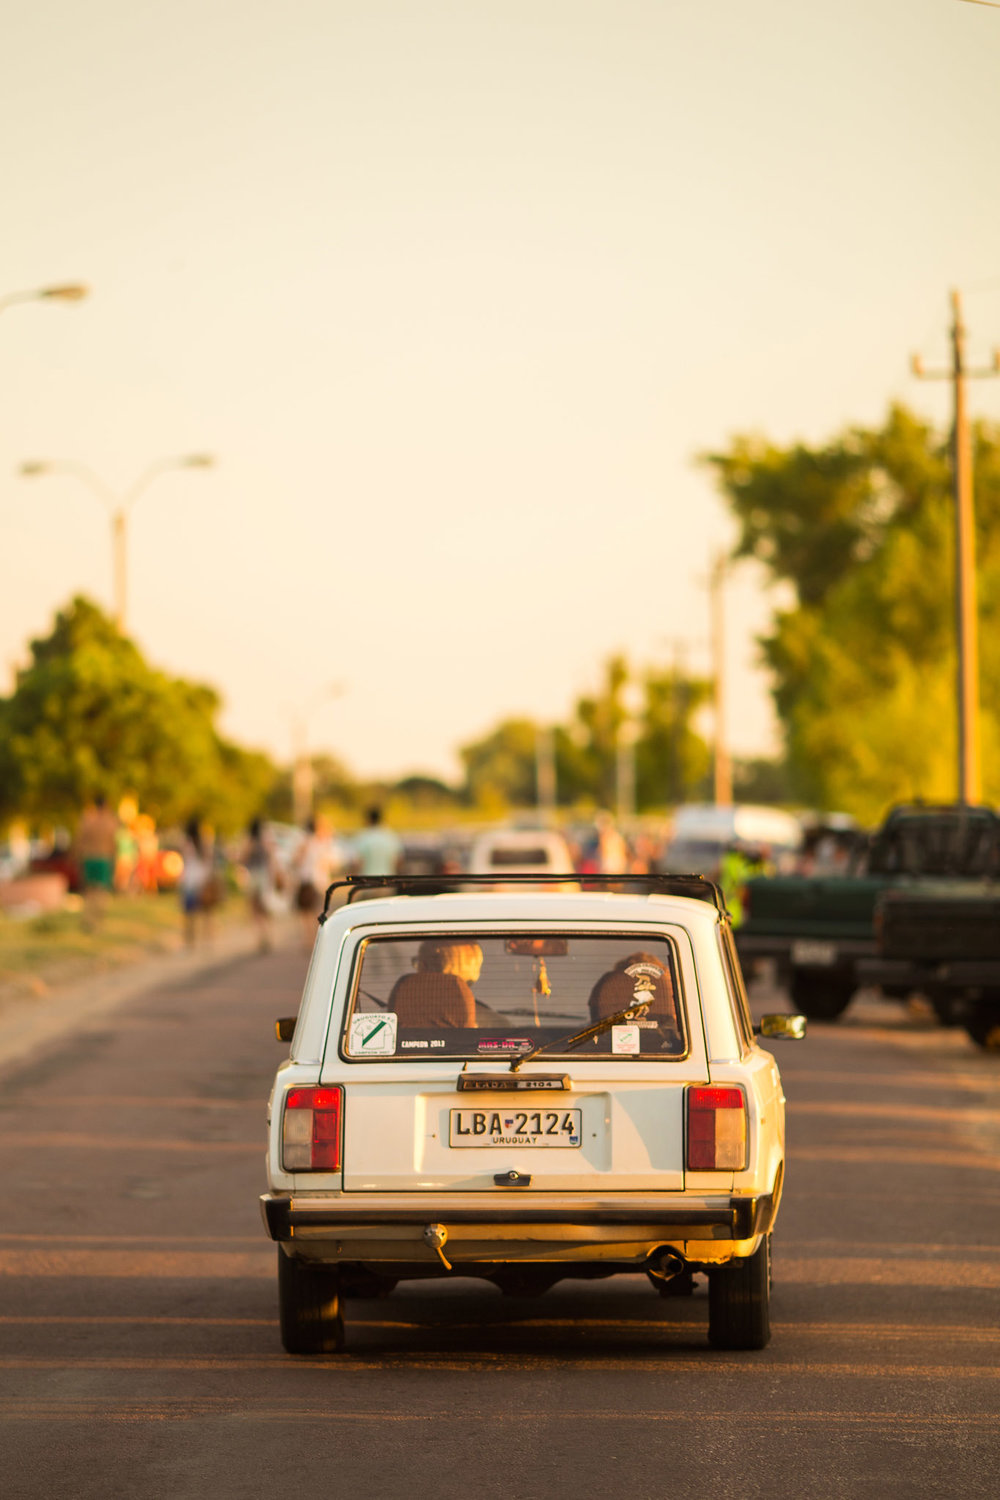 Wedding_Travellers_Uruguay_Traveling-Overland-lada-old-car.jpg